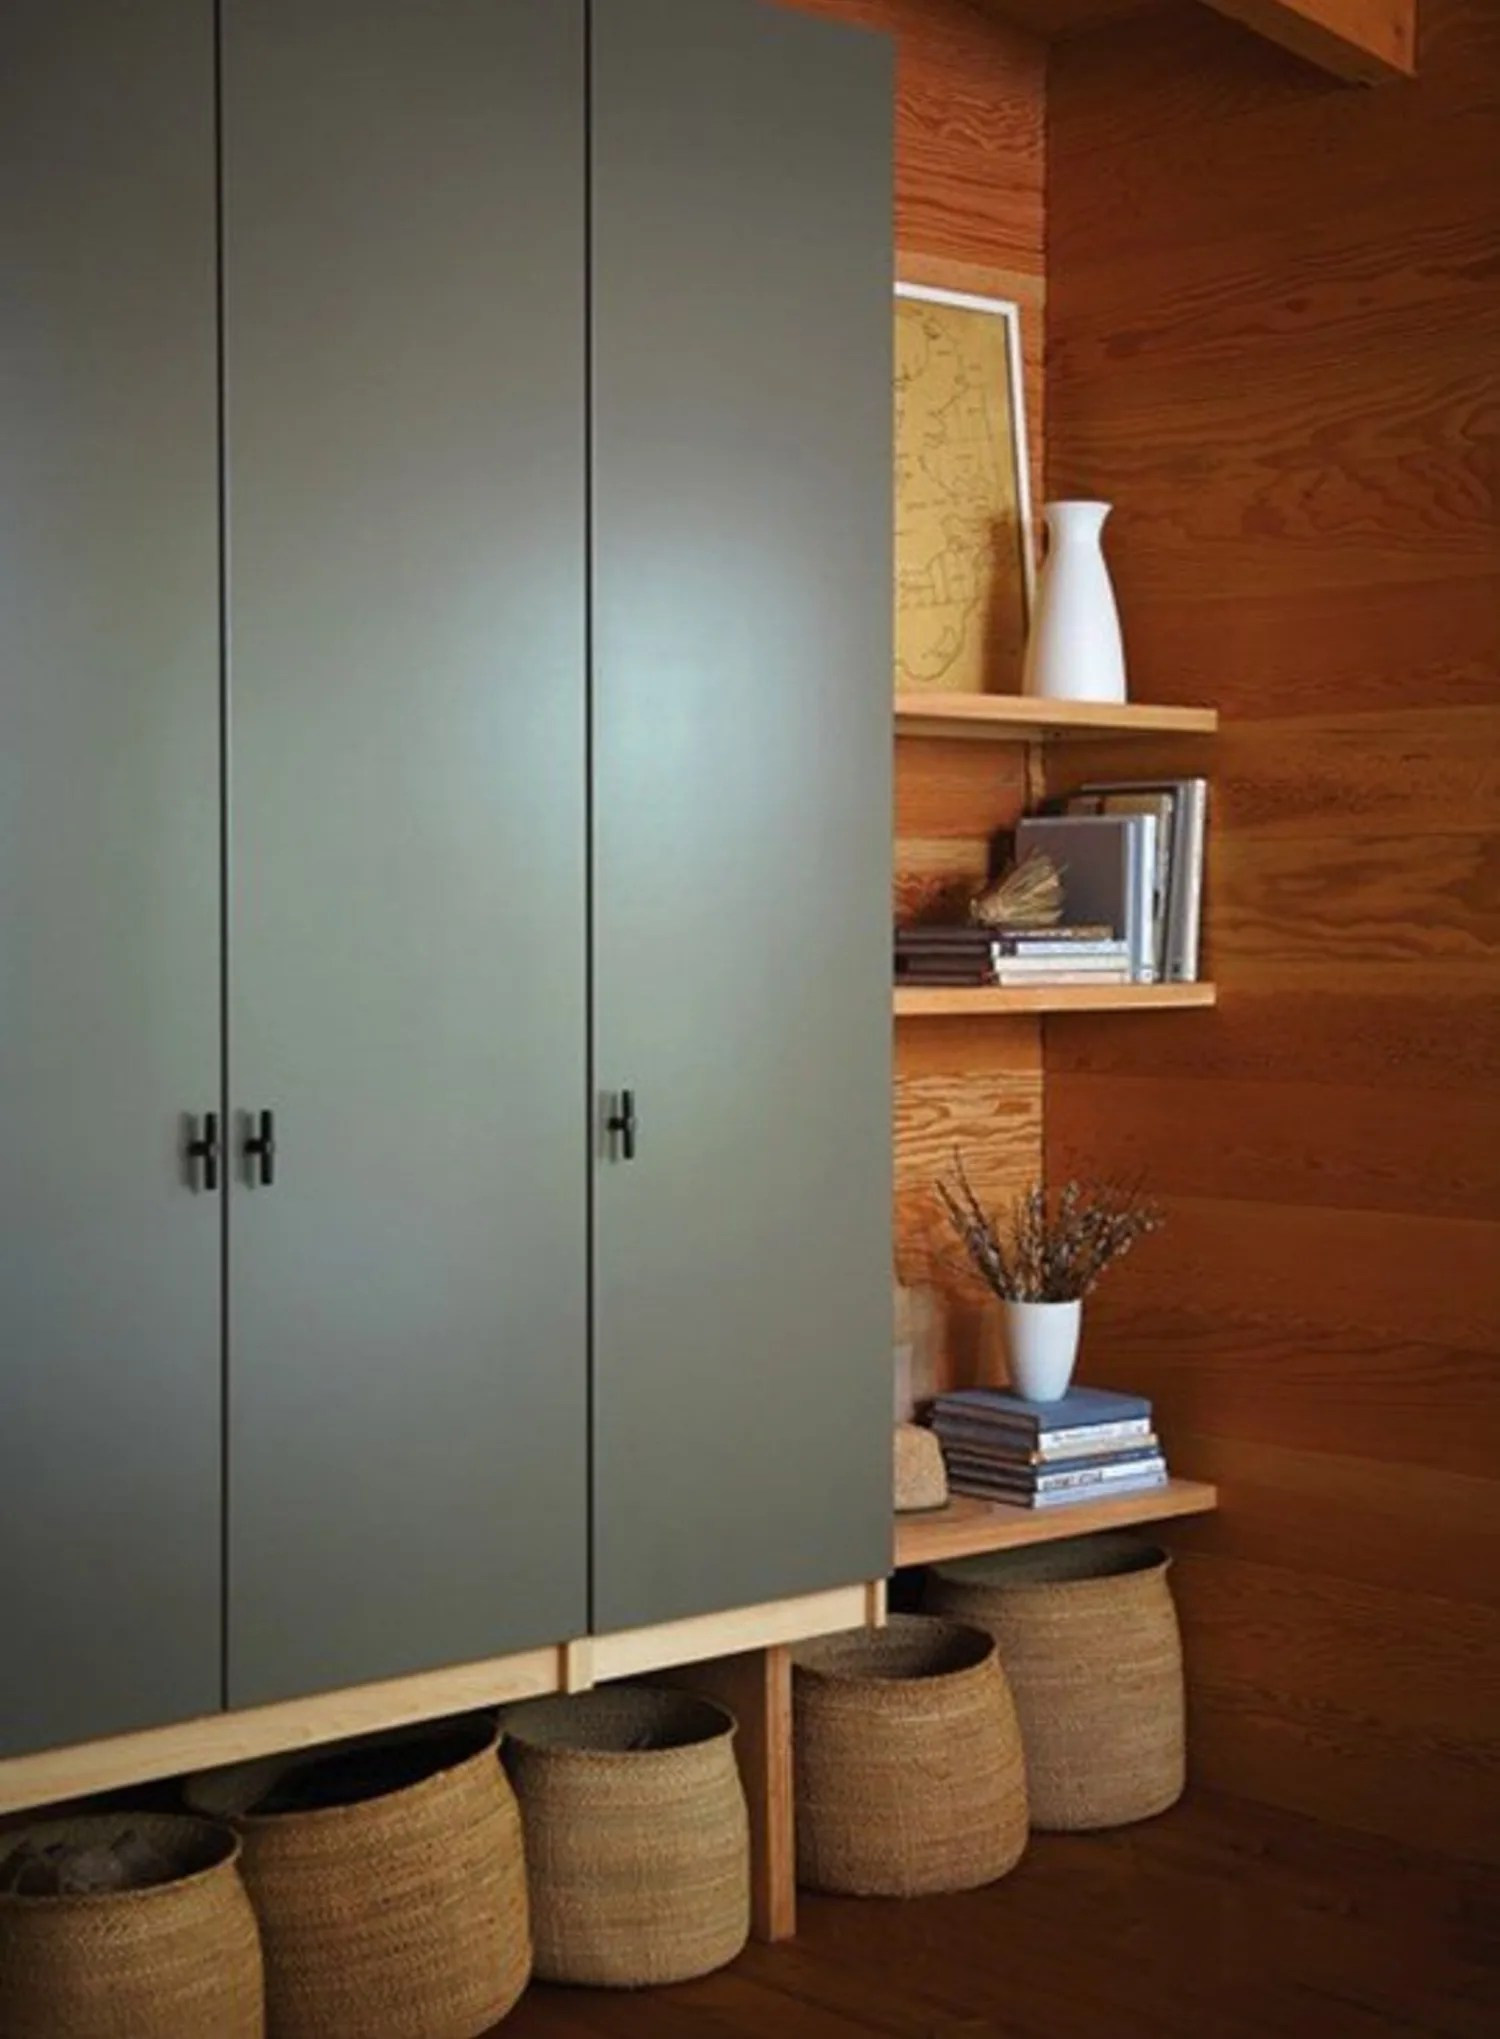 Ikea Wardrobe Leaning To One Side Ikea Hacks Diy Ways To Make Cheap Wardrobes Look More